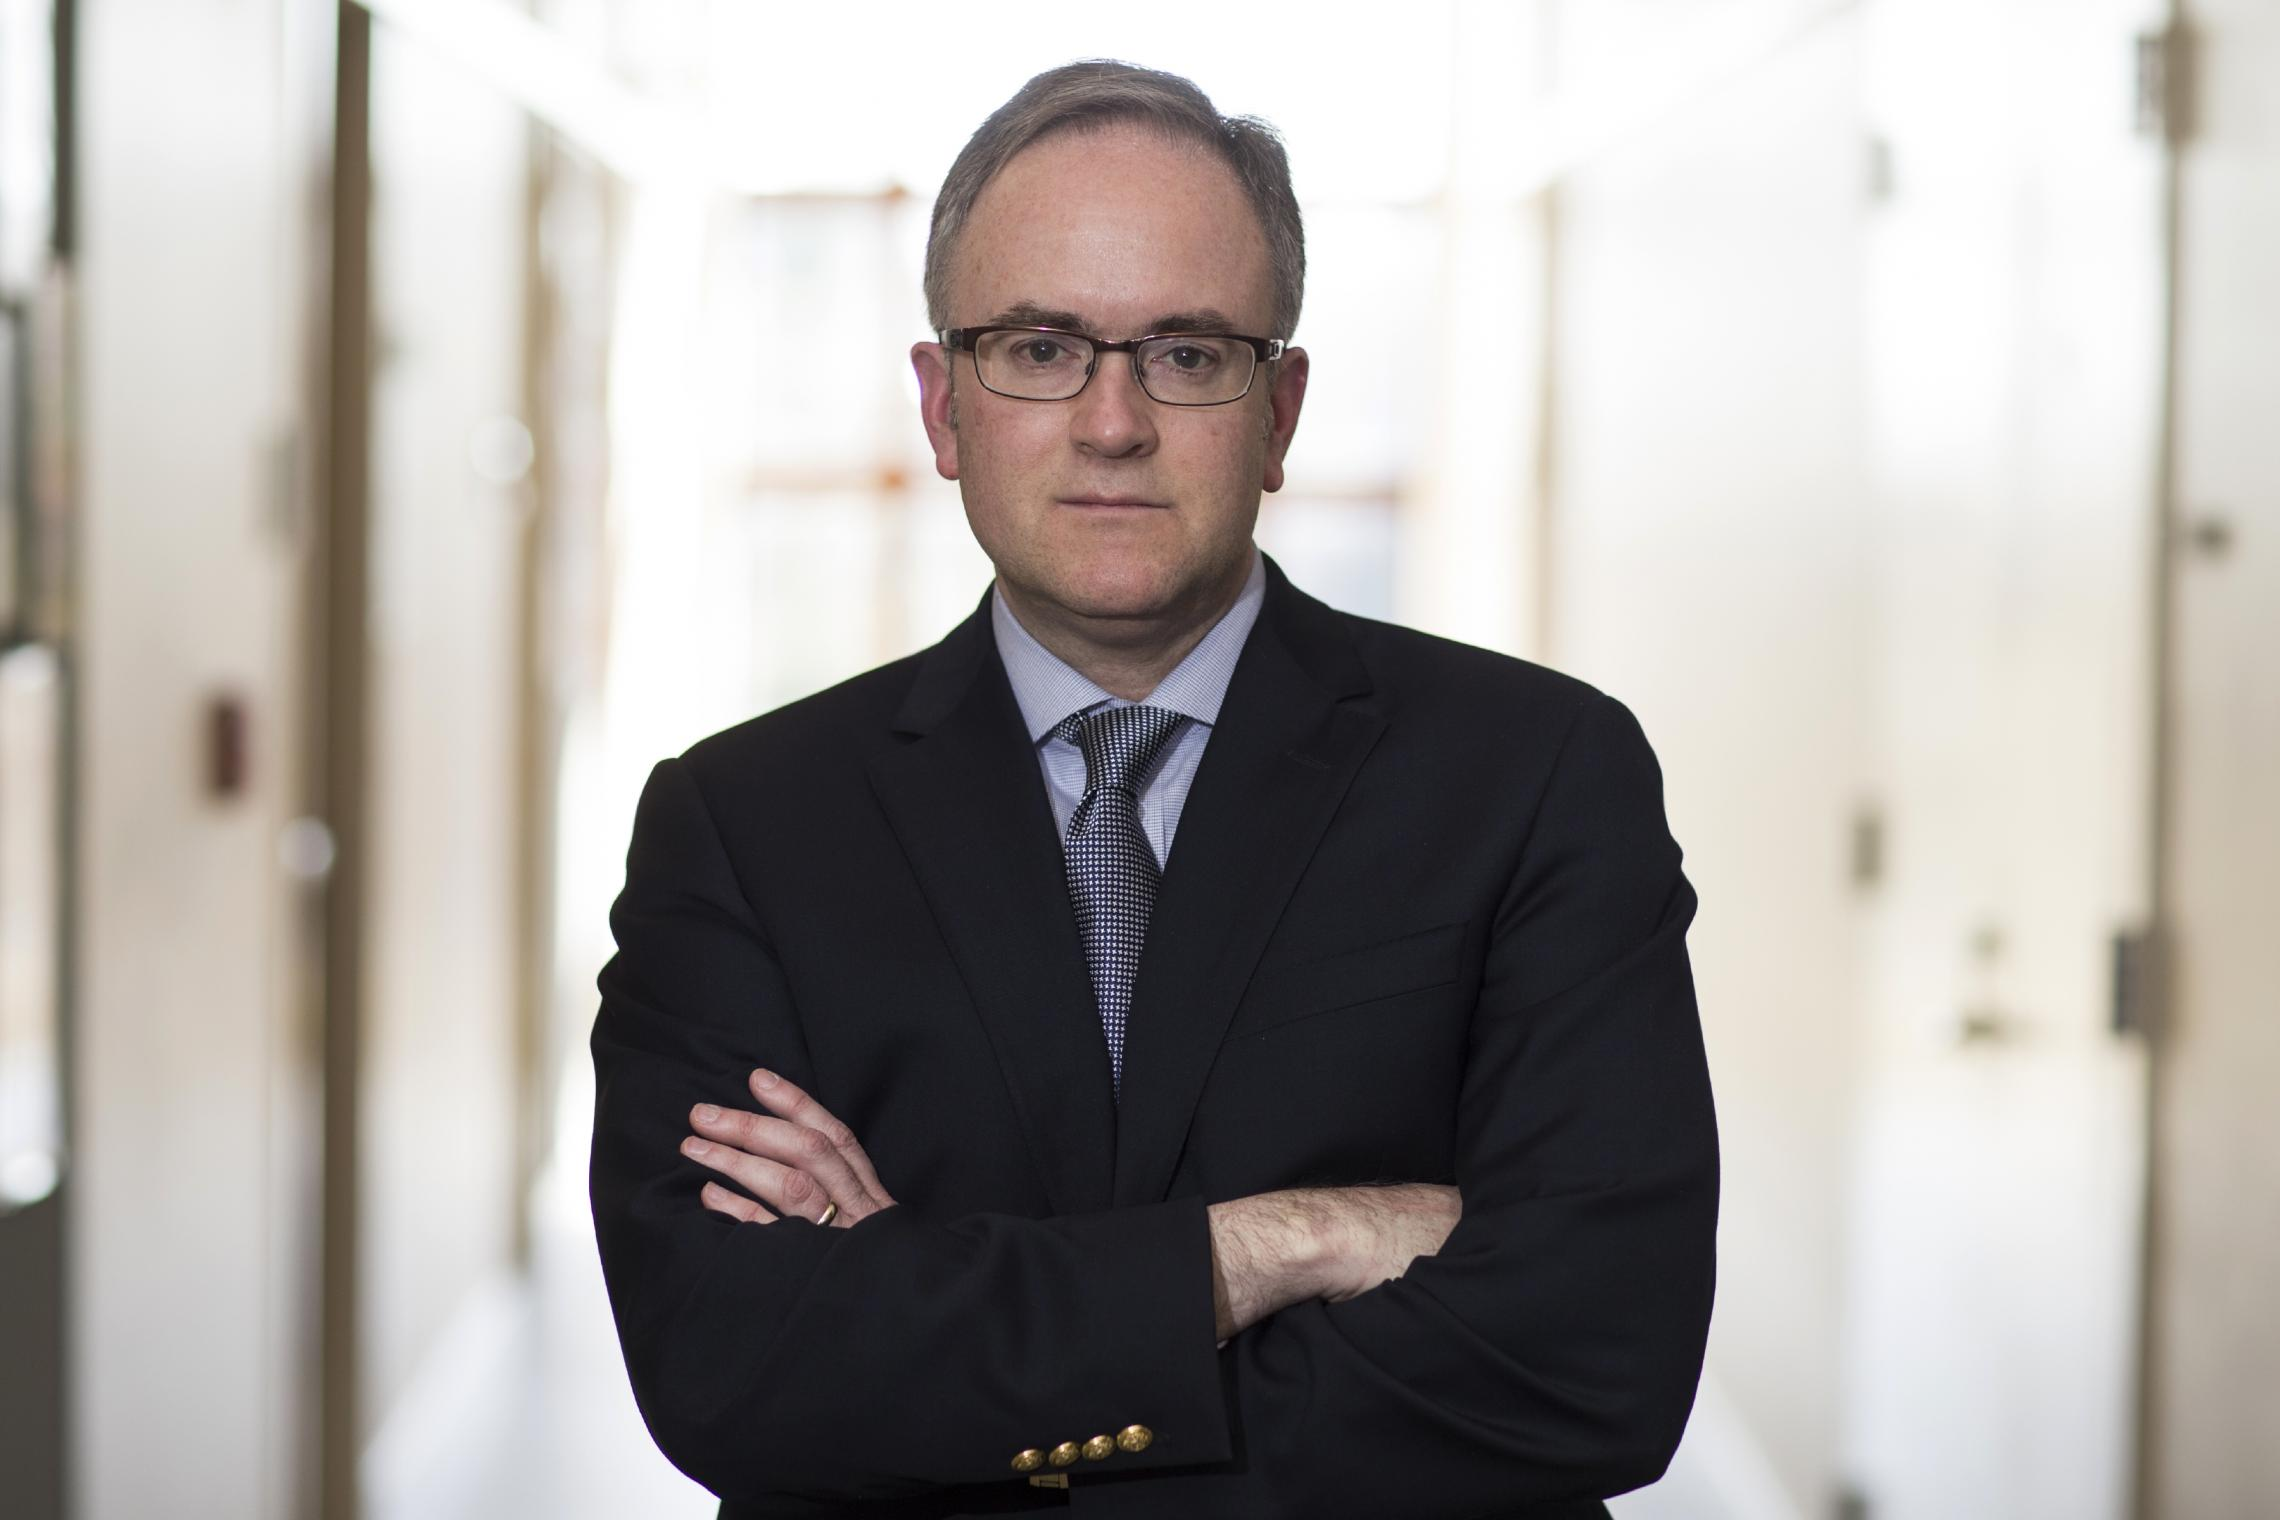 John Owen is the University's Taylor Professor of Politics and an expert in foreign policy and political Islam.